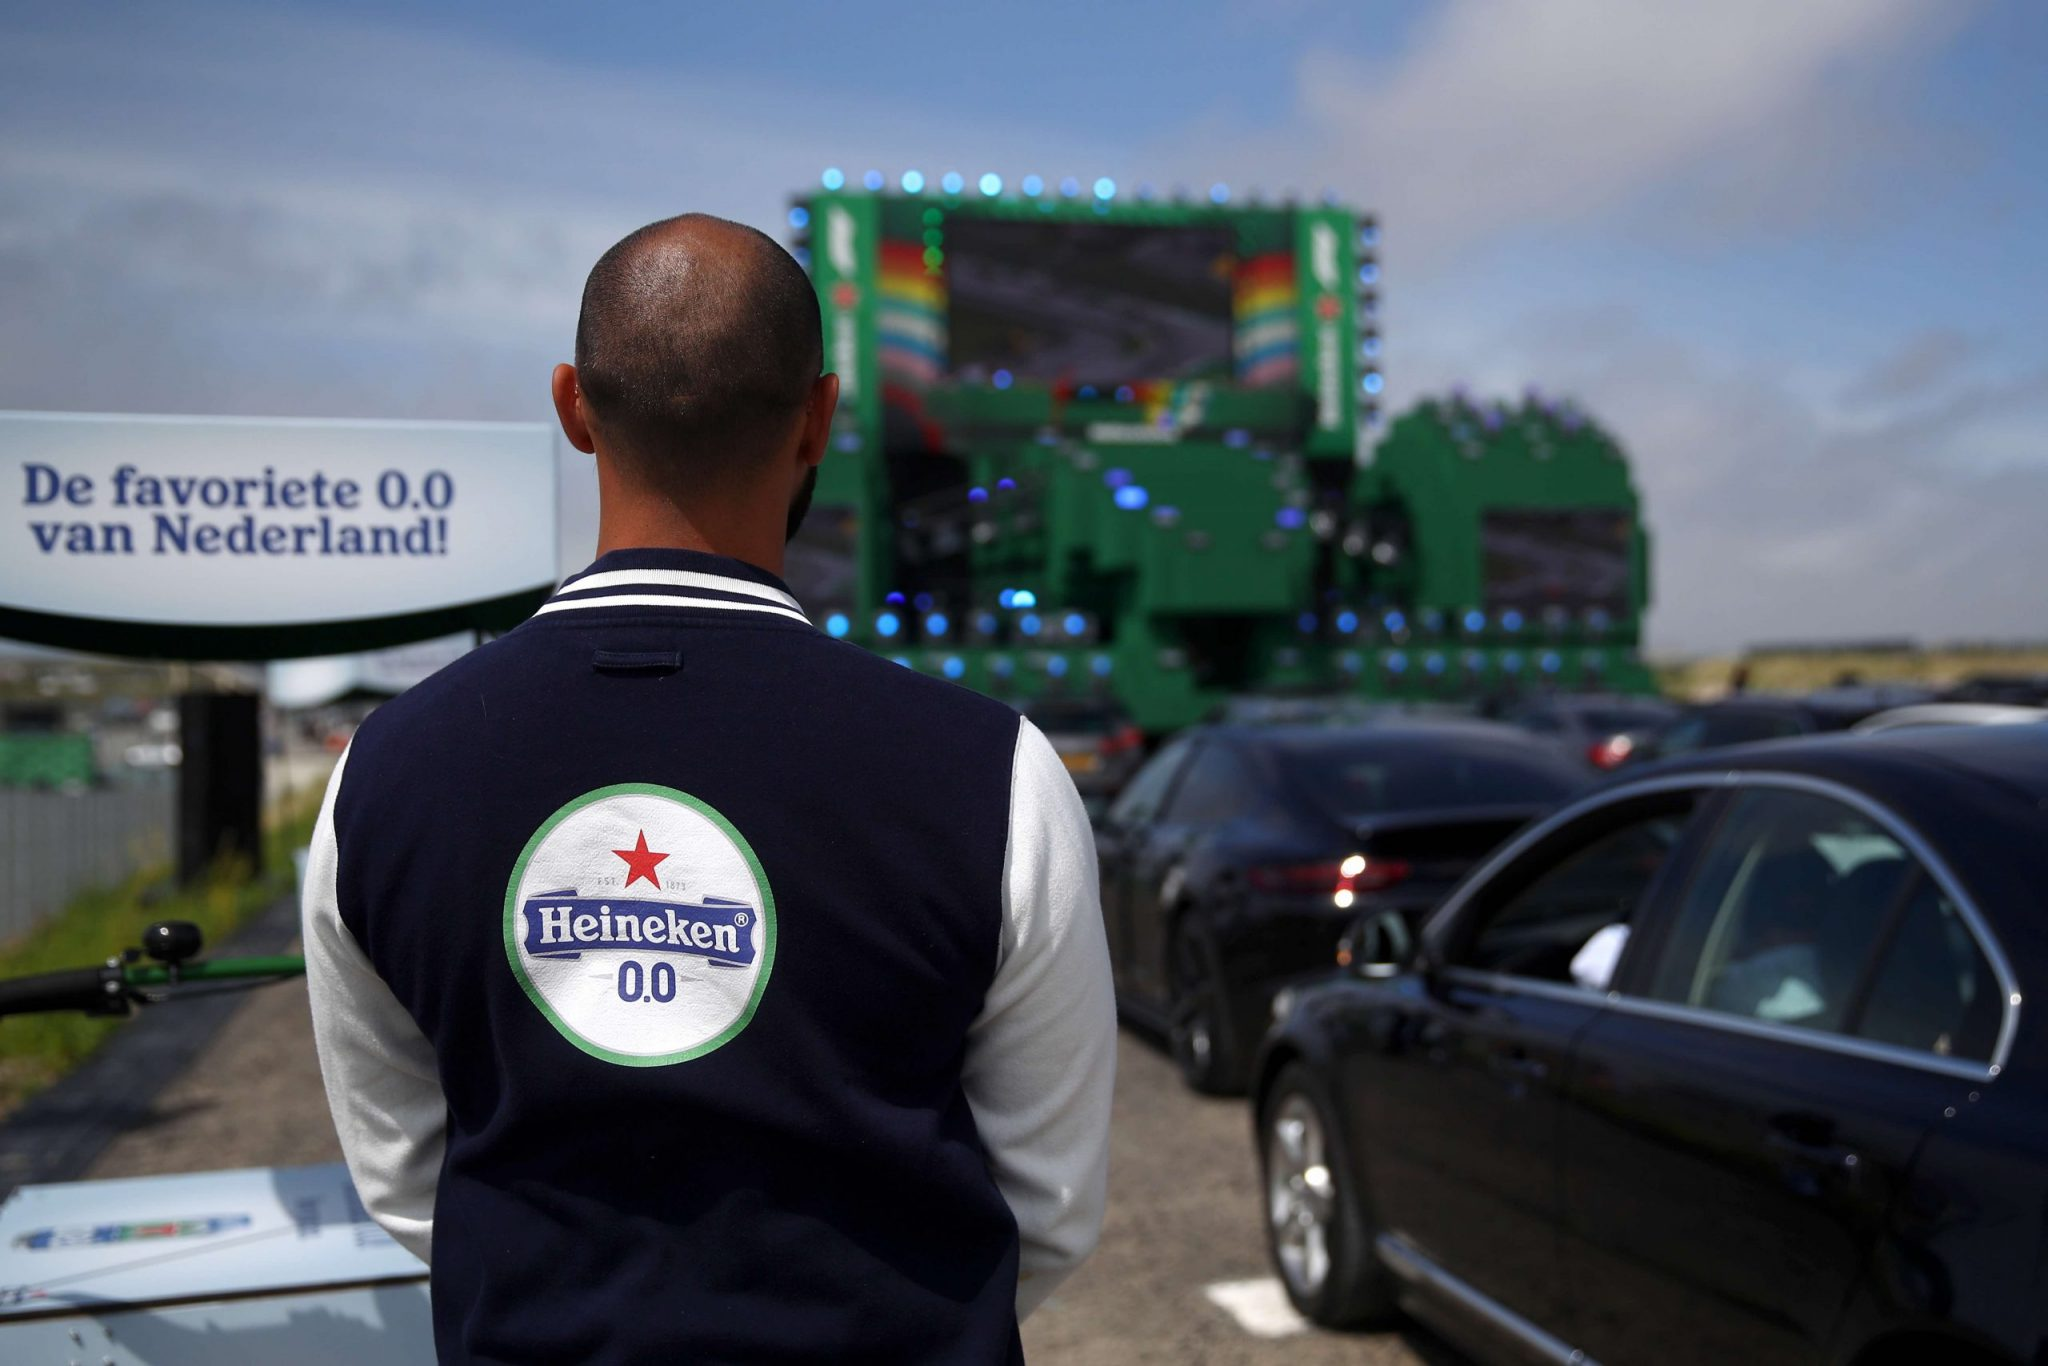 ZANDVOORT, NETHERLANDS - JULY 05: A general view as guest of Heineken® celebrate the return of F1® with a Heineken® 0.0 #NowYouCan Drive-In viewing experience of the Austrian GP, at the Circuit Zandvoort on July 05, 2020 in Zandvoort, Netherlands. (Photo by Dean Mouhtaropoulos/Getty Images)